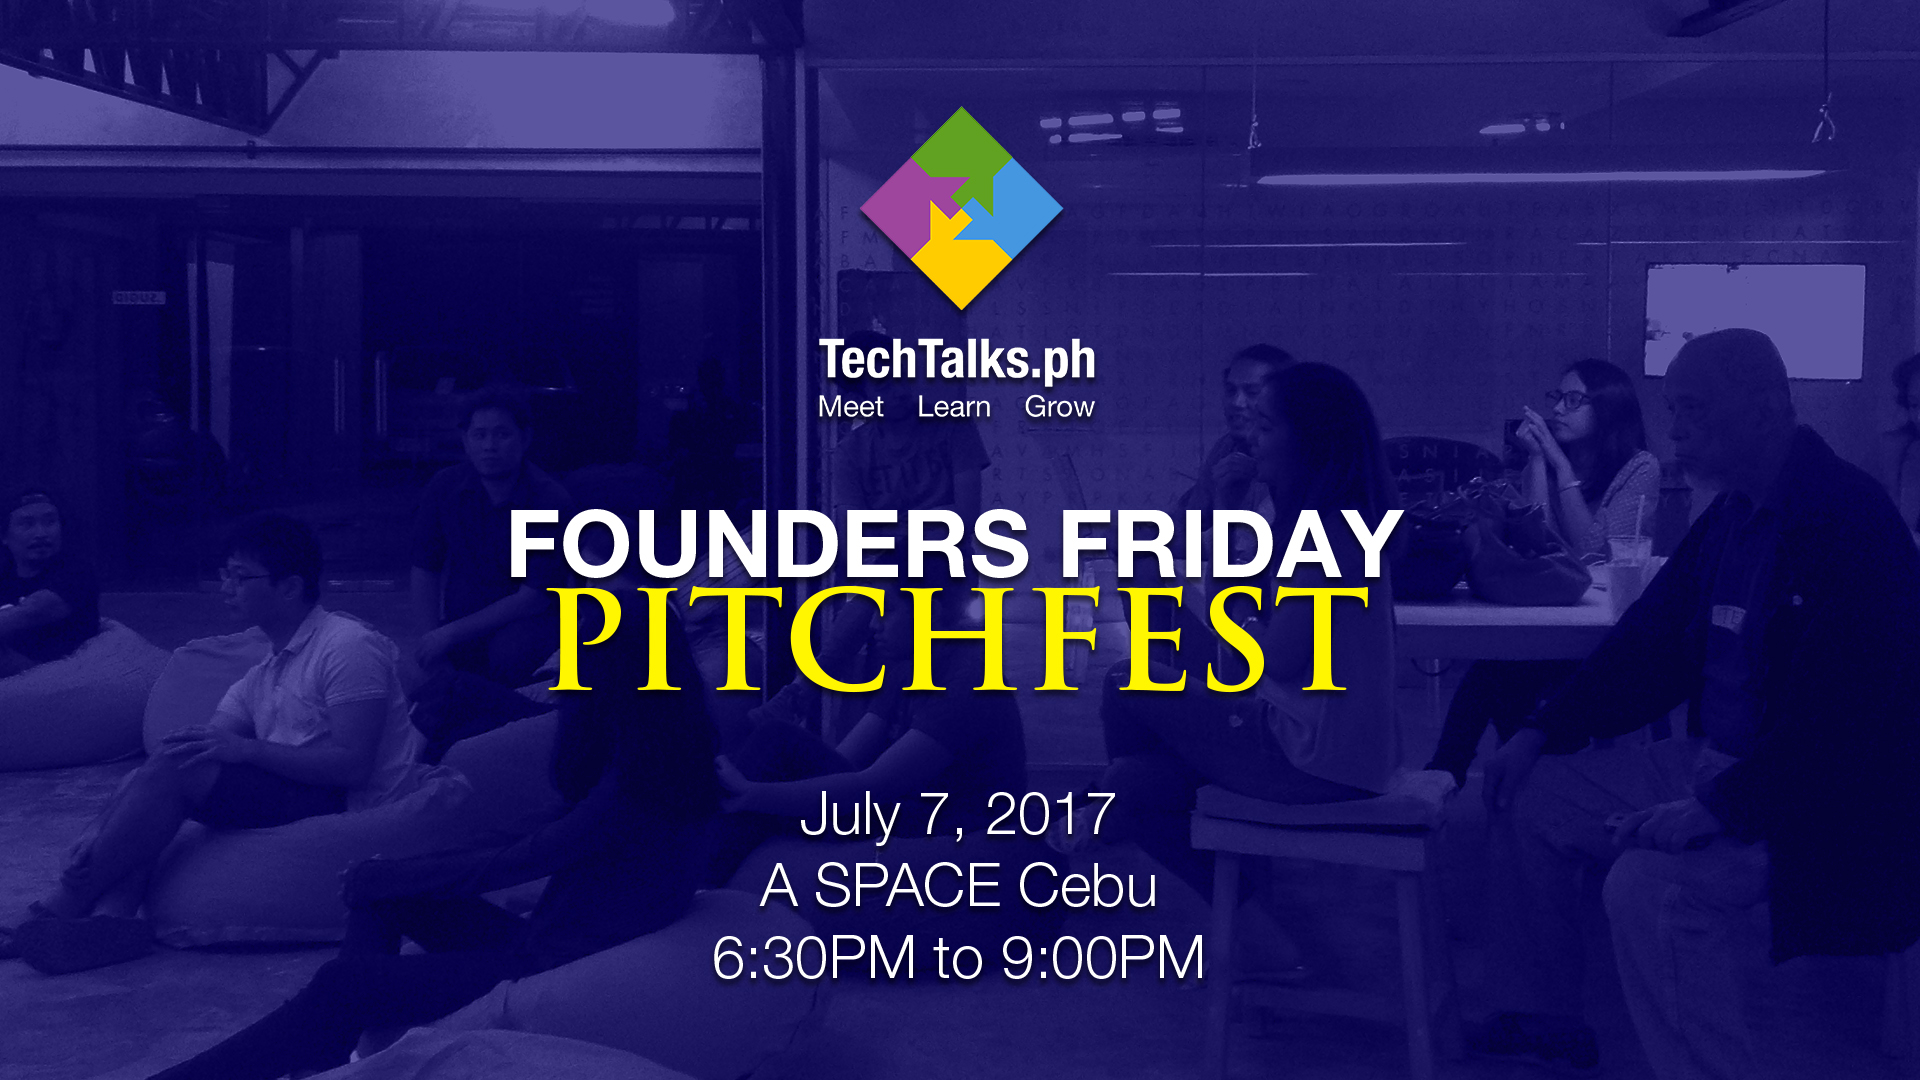 Founders Friday Pitchfest